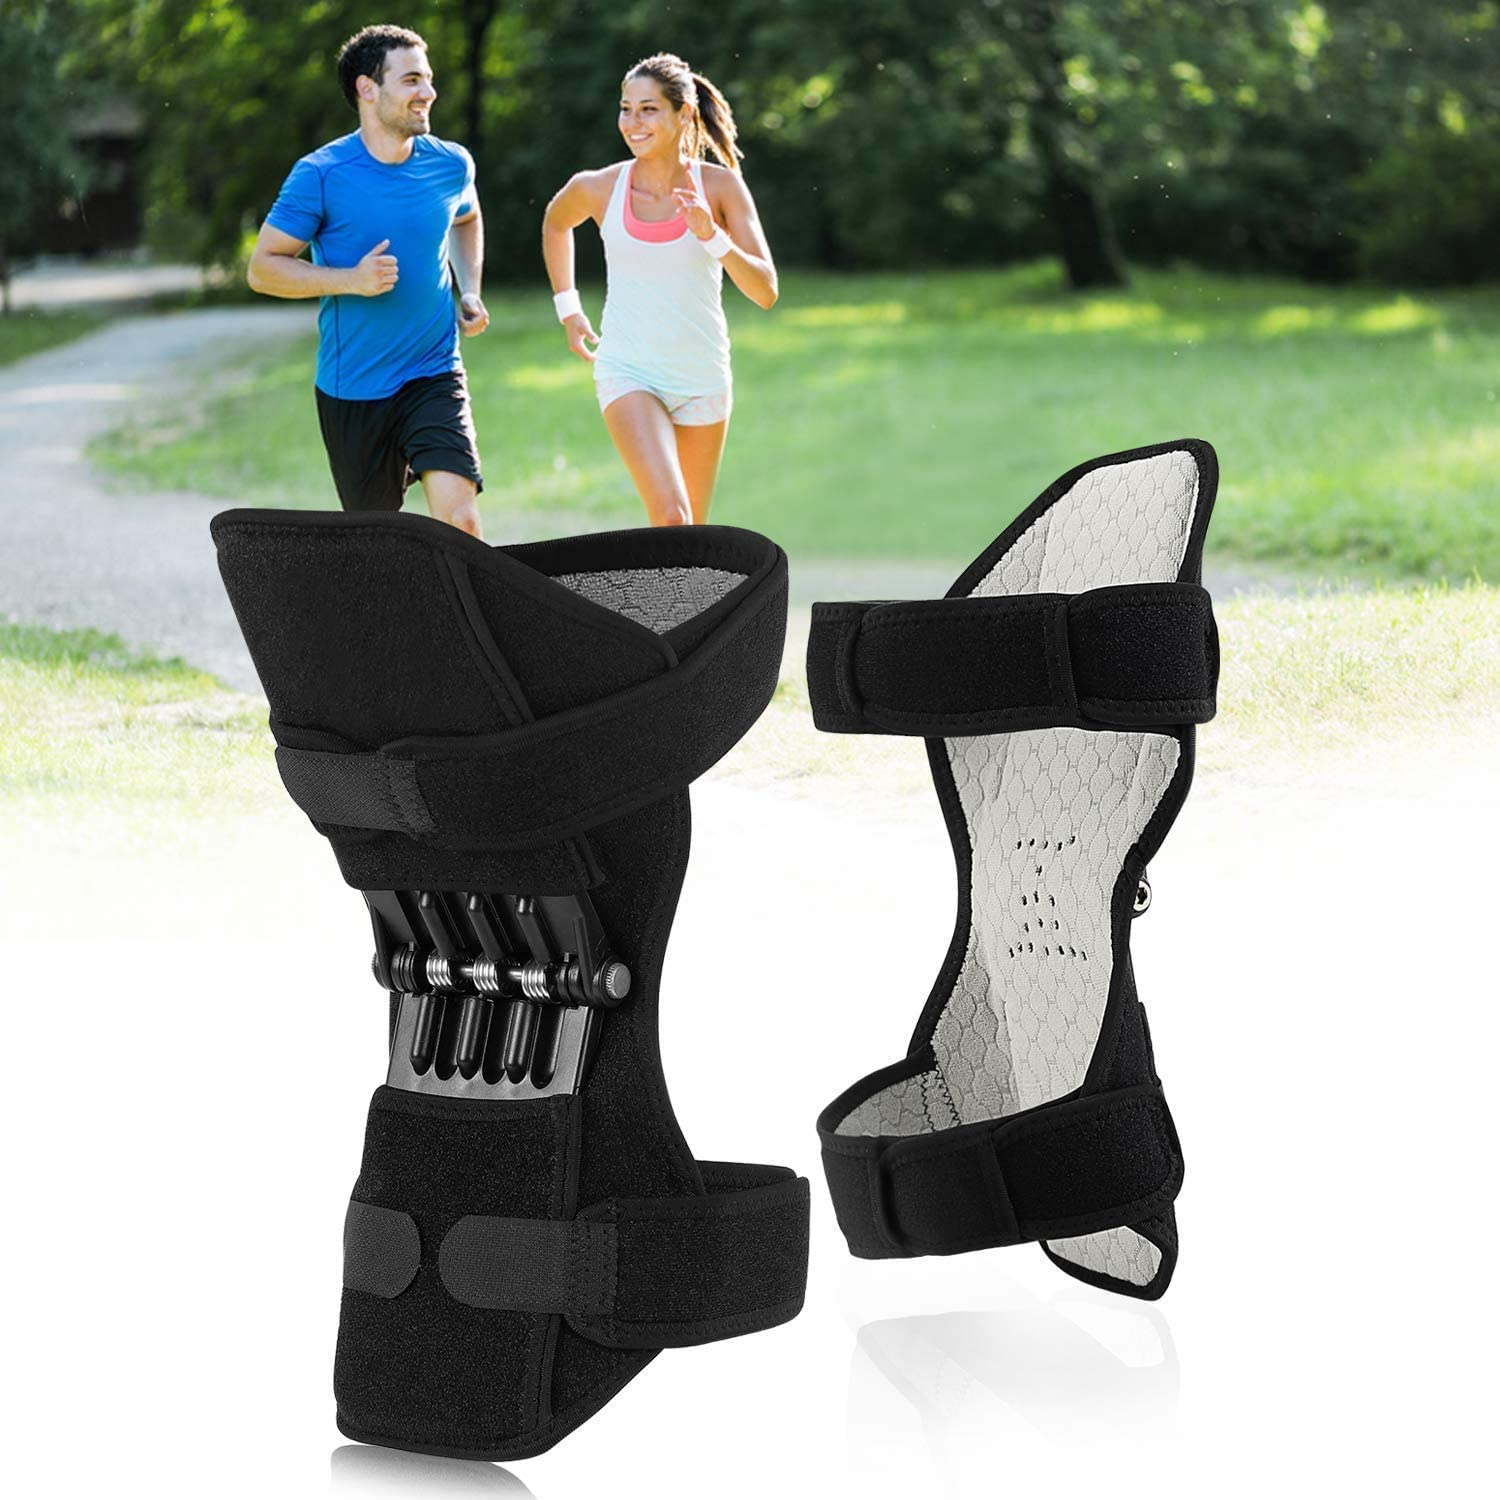 LIMEIB Prevent Joint Damage Support Knee Pad, Knee Humerus Band, High Elastic Tendon Support Band Suitable For Arthritis Tendonitis Sports Running Gym